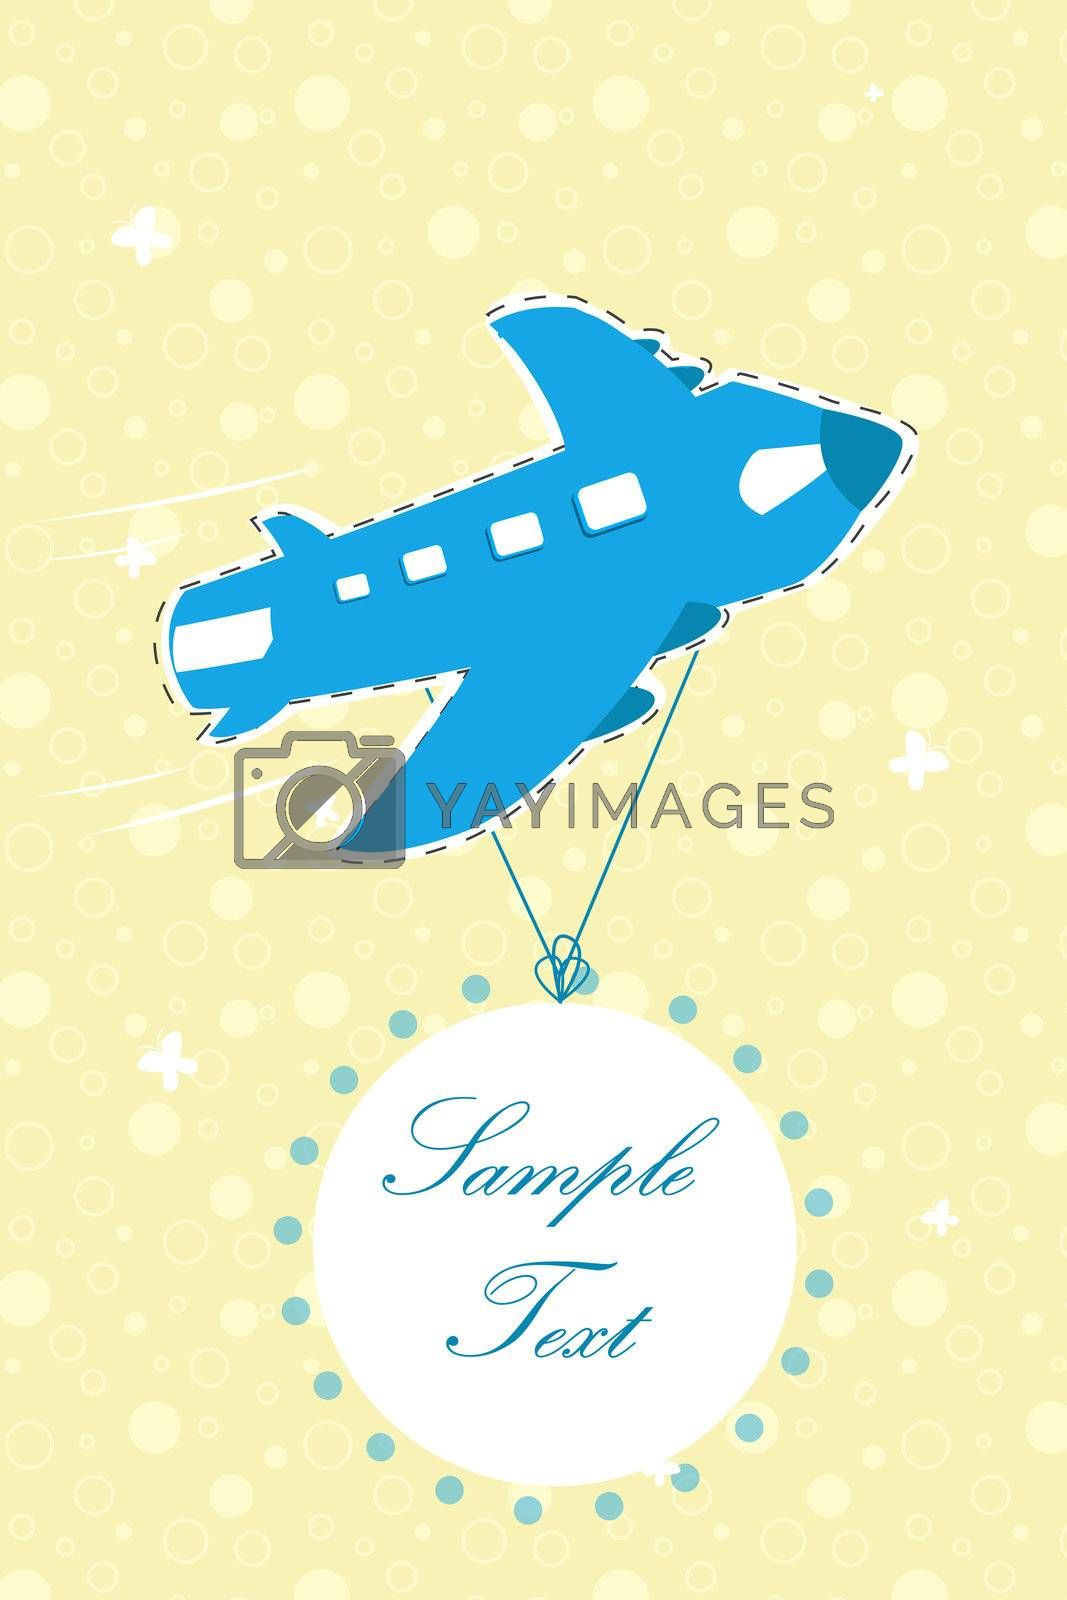 illustration of aeroplane on backdrop background